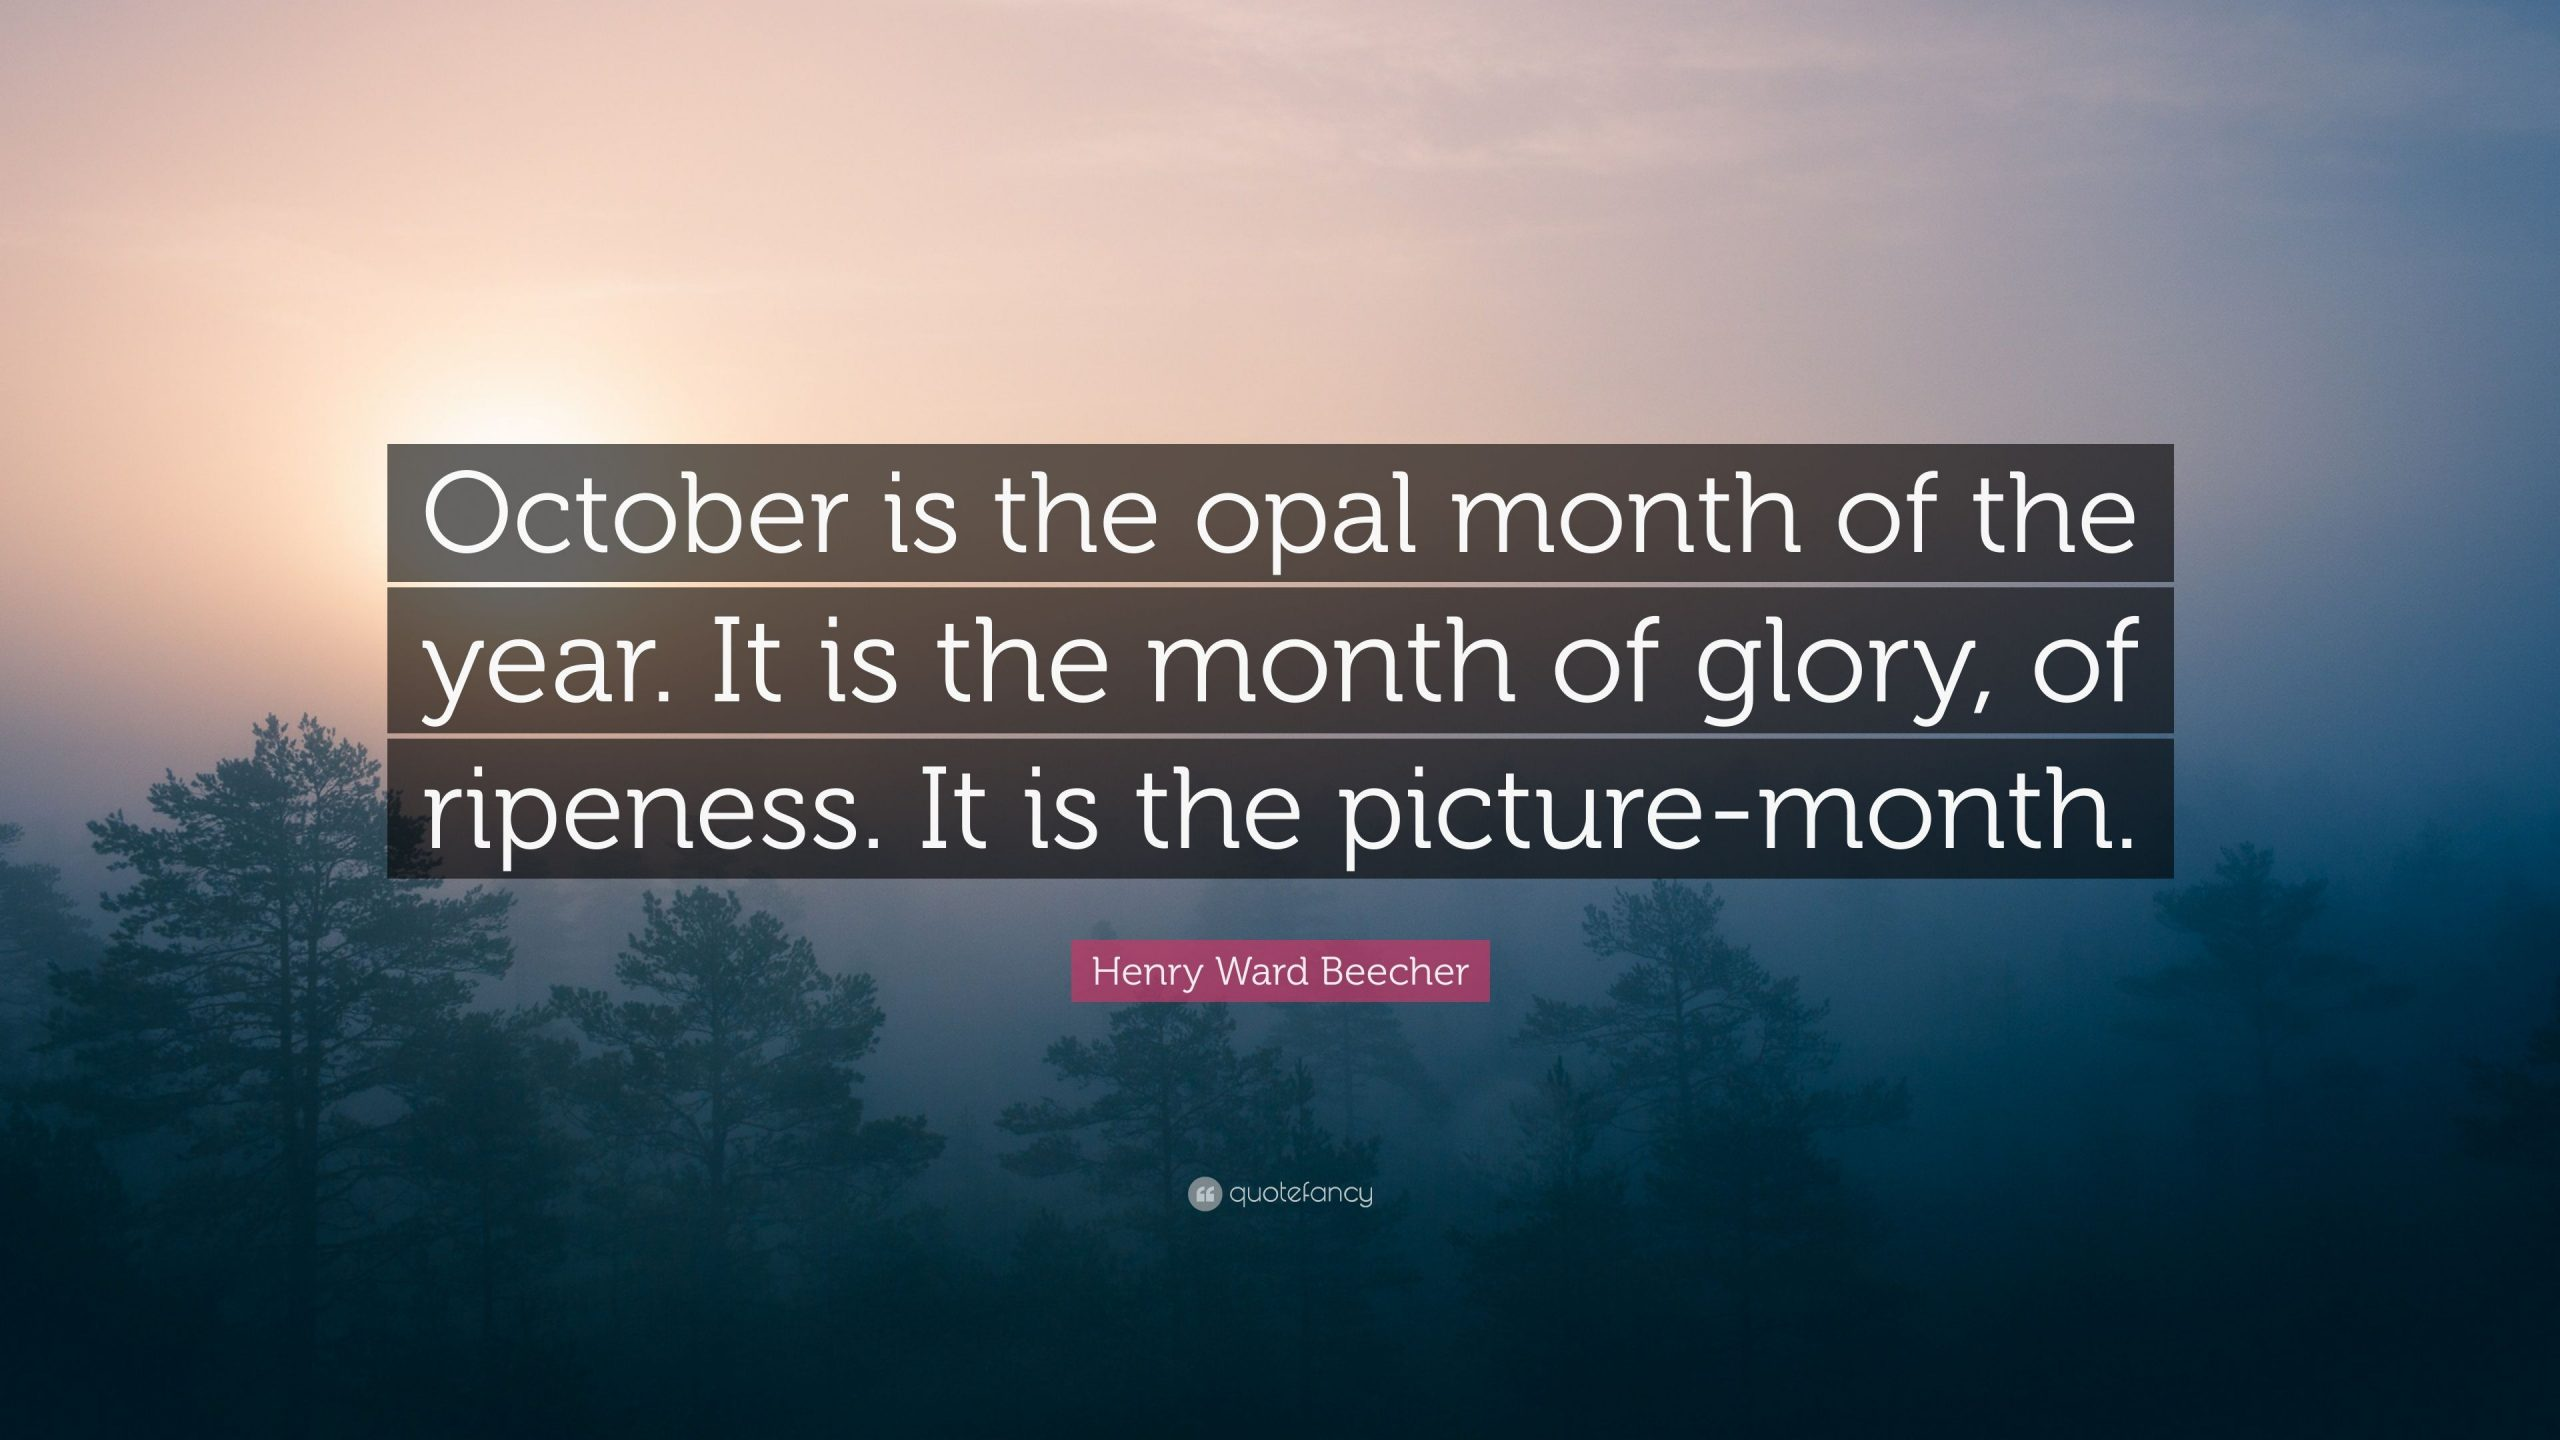 Quotes For October Month on Tumblr